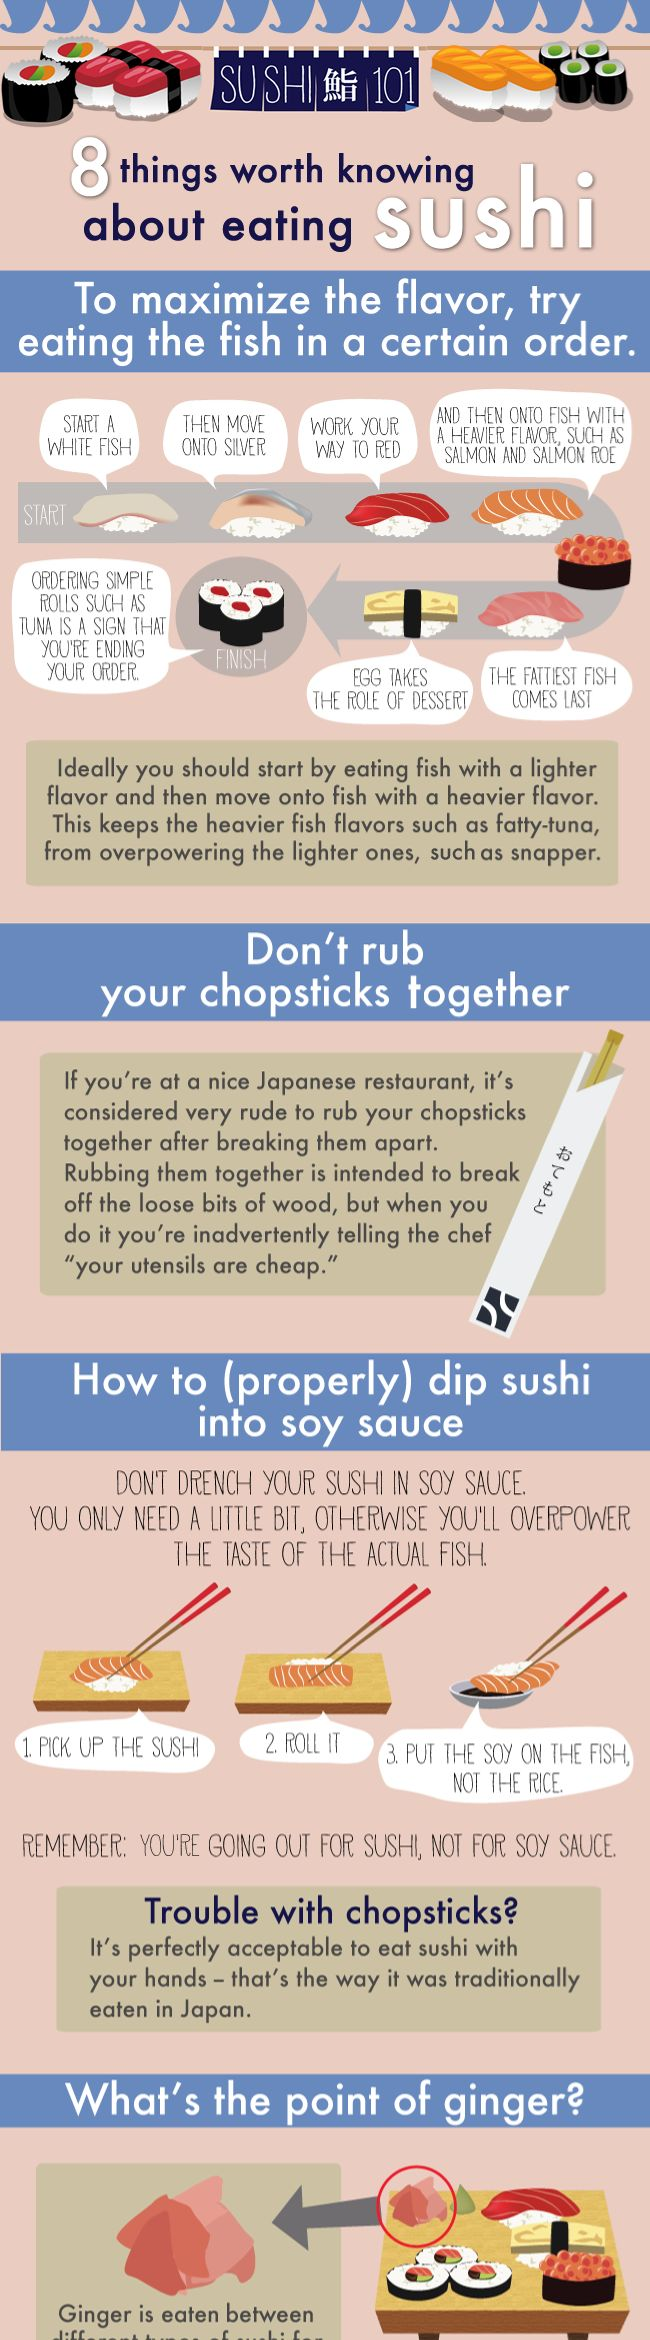 8 things worth knowing about eating #Sushi